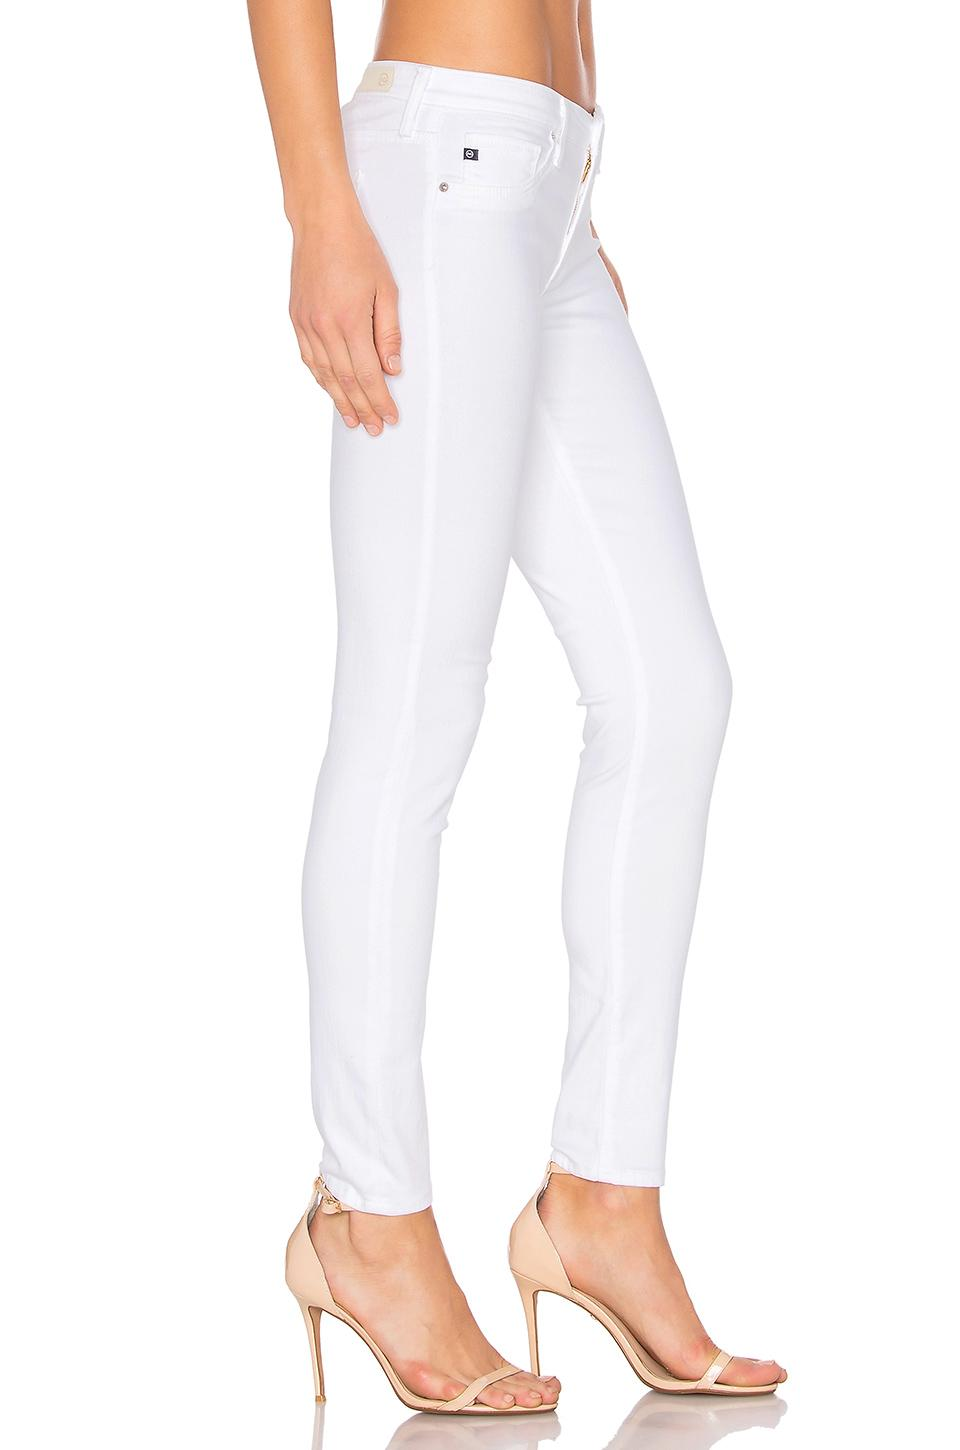 AG Jeans Cotton Legging Ankle In White. Size 25,26,30,31.